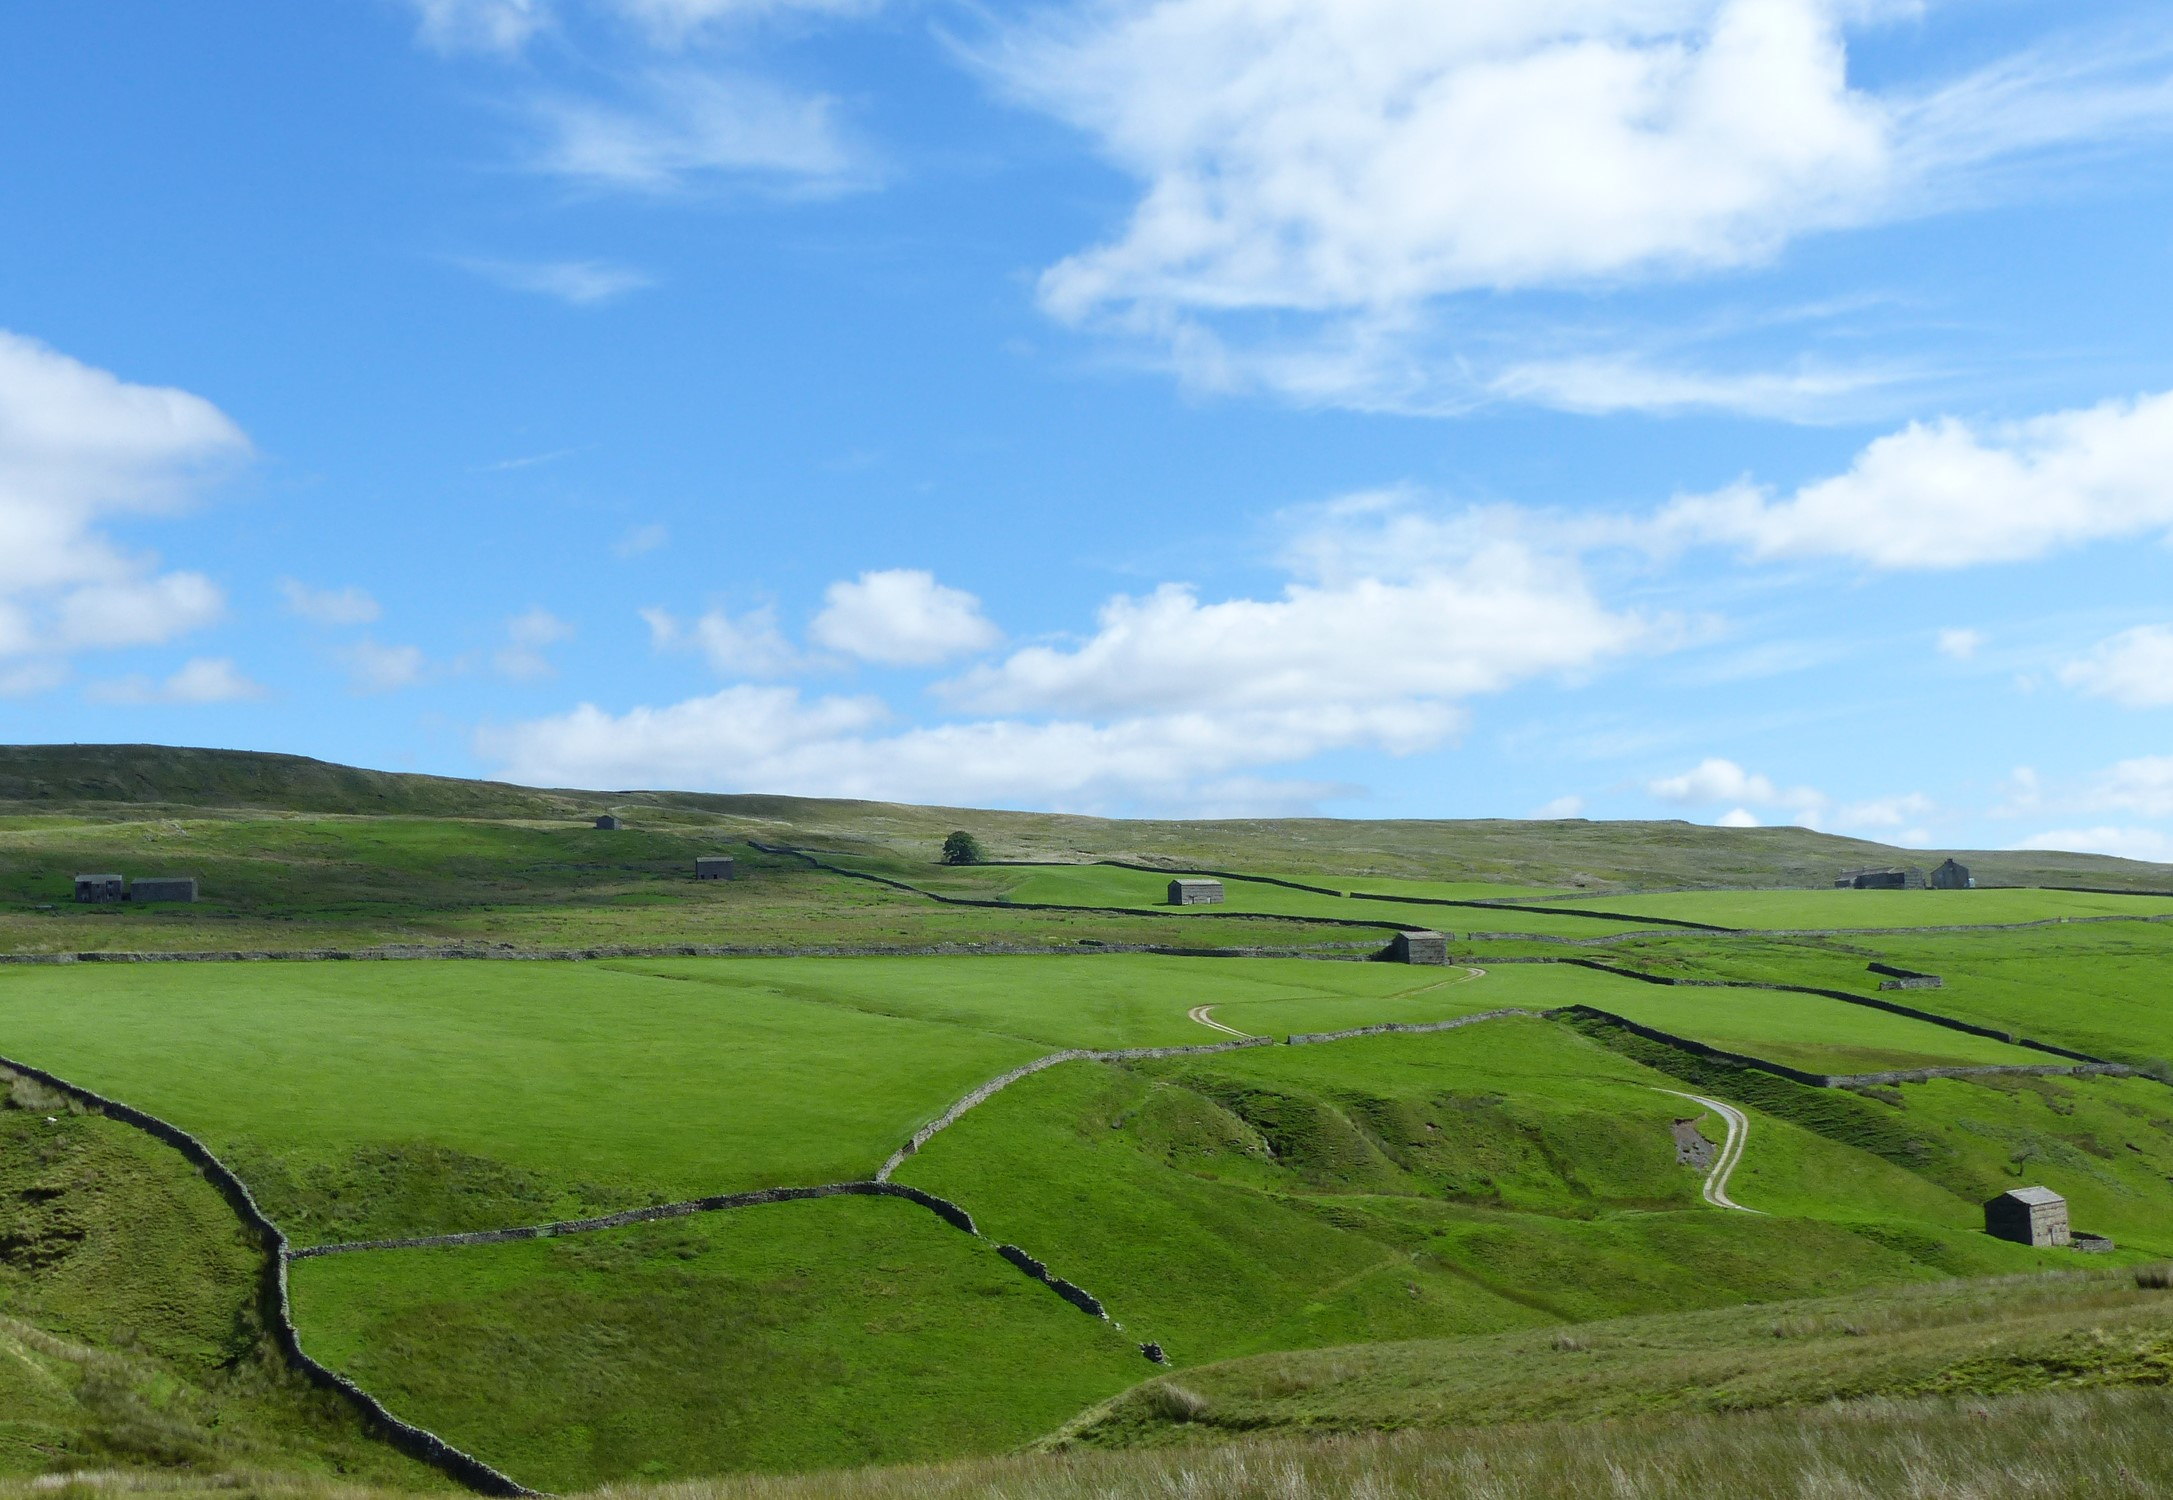 Green fields with barns and blue sky above